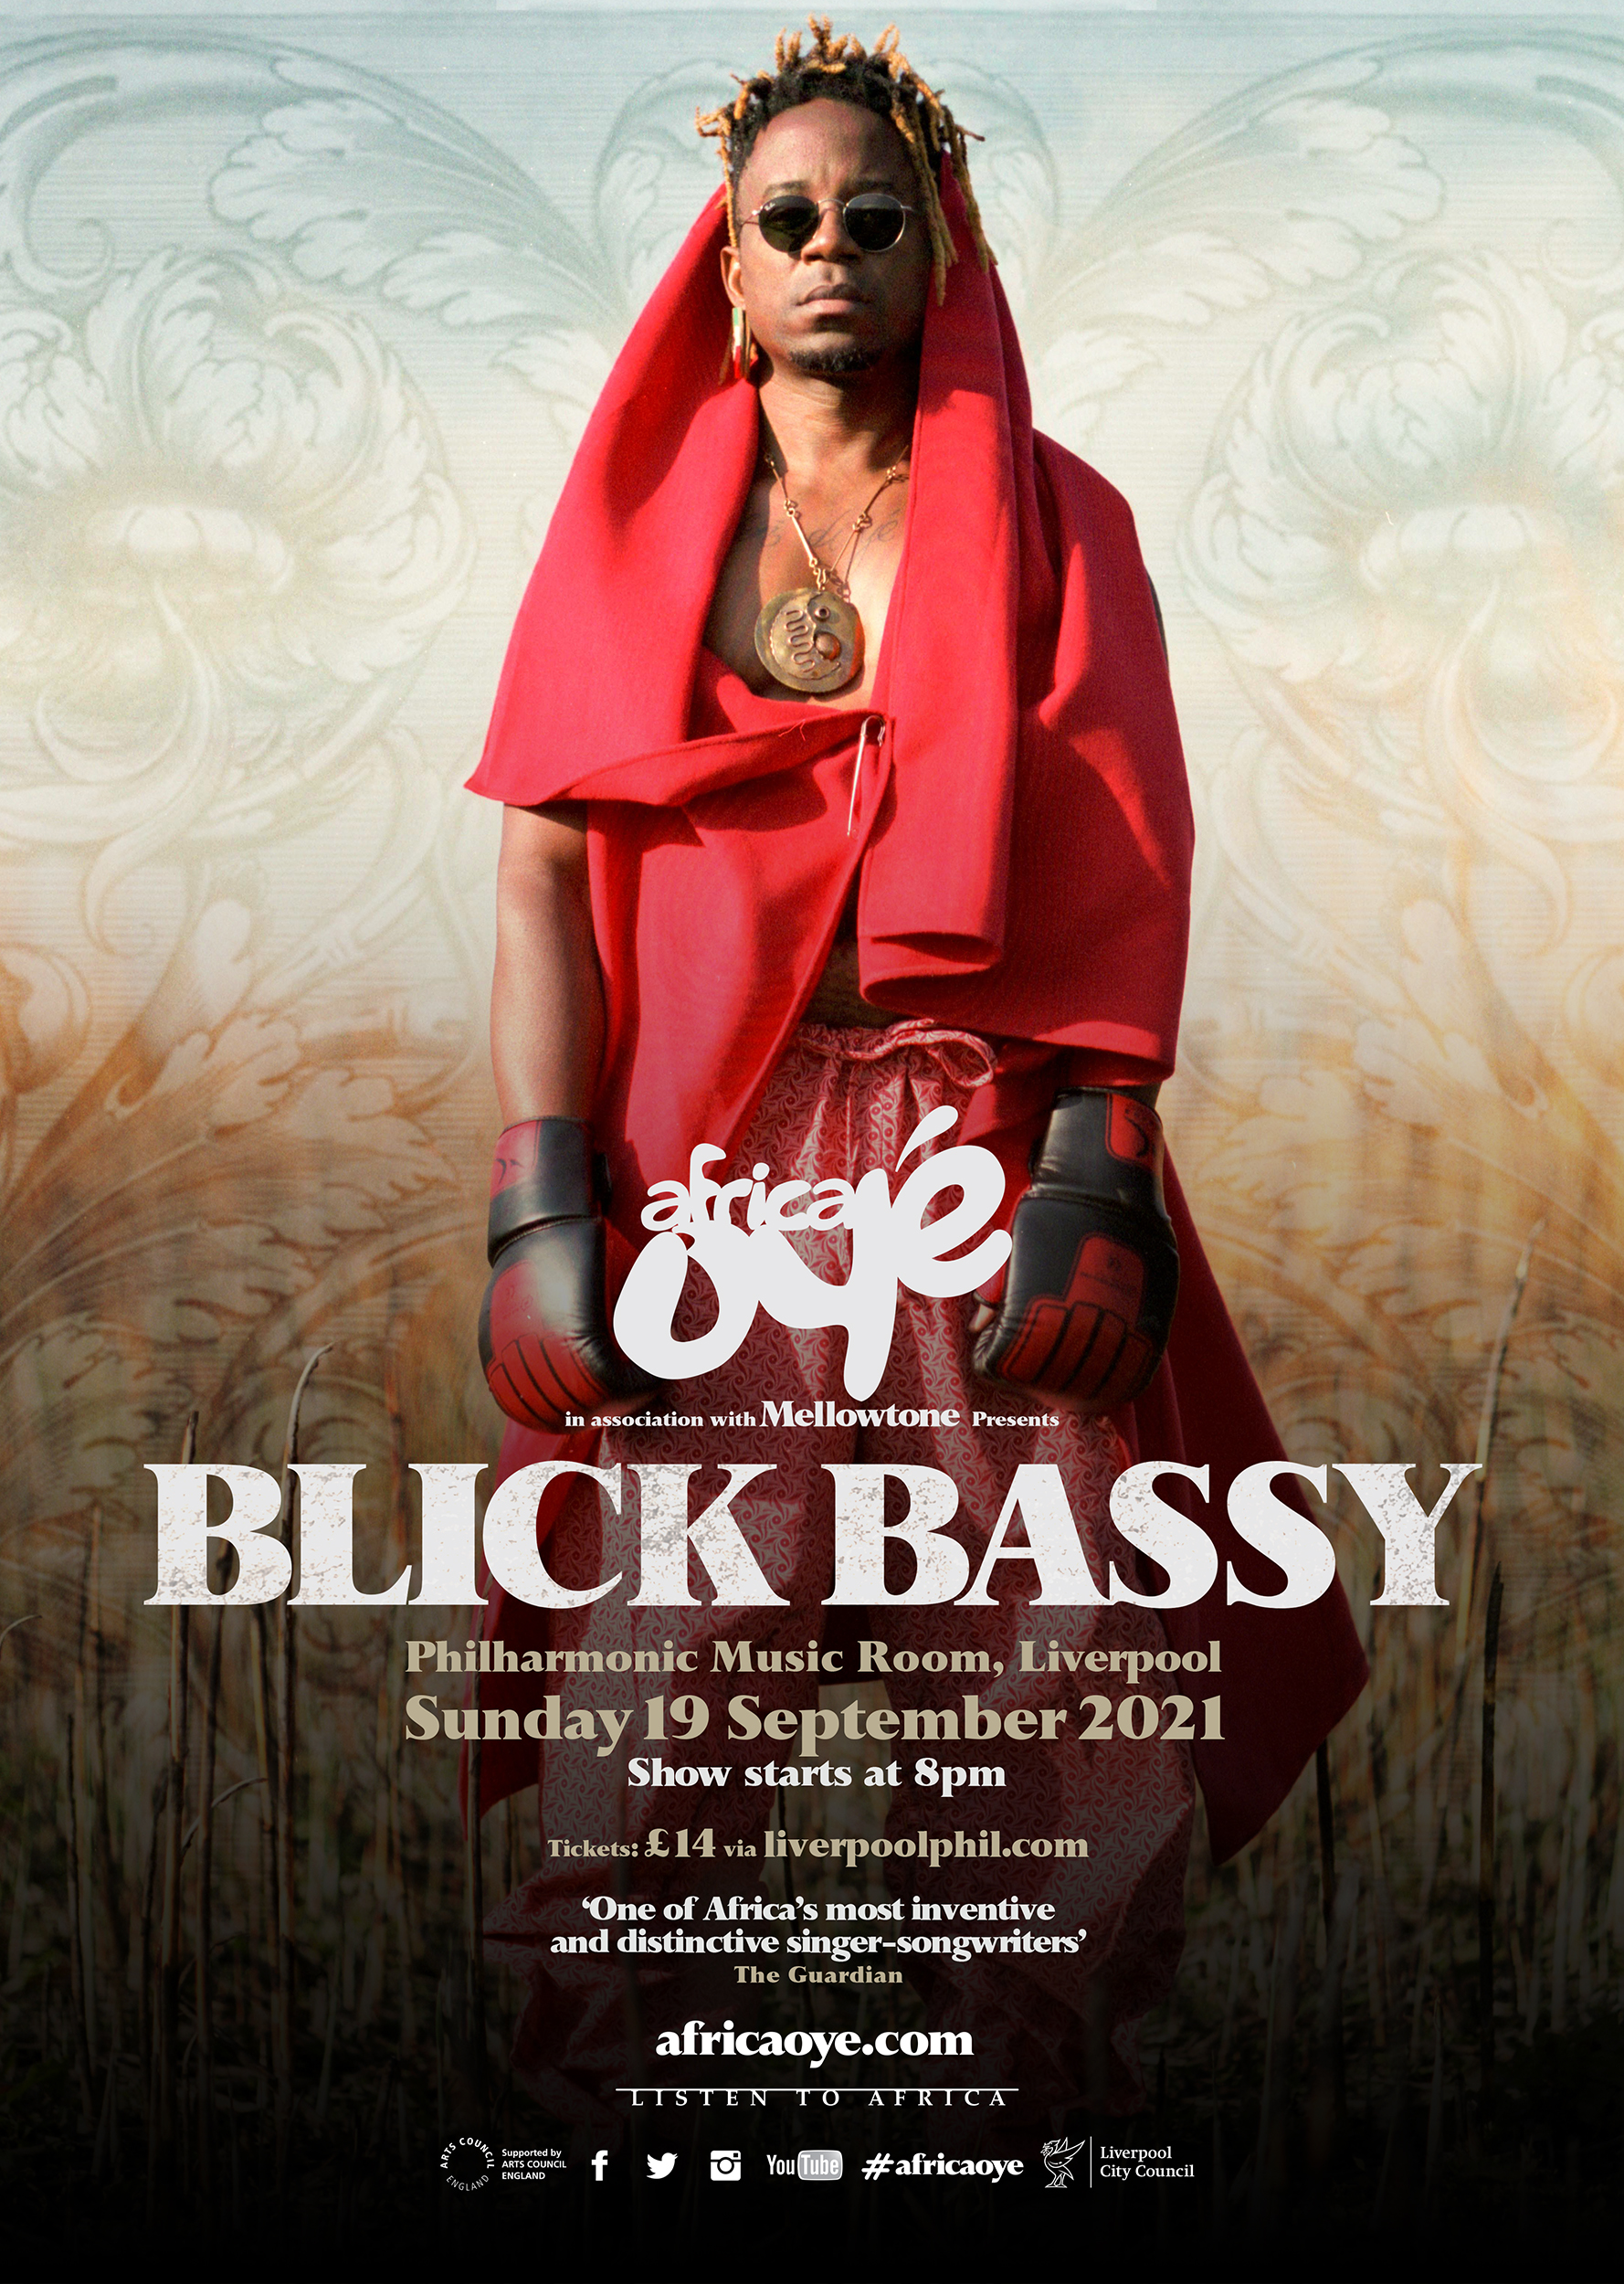 Africa Oyé in association with Mellowtone present...Blick Bassy. Liverpool Philharmonic Music Room Sunday 19th September 2021, 8pm. Tickets from £14. one of Africa's most inventive and distinctive singer-songwriters - The Guardian.